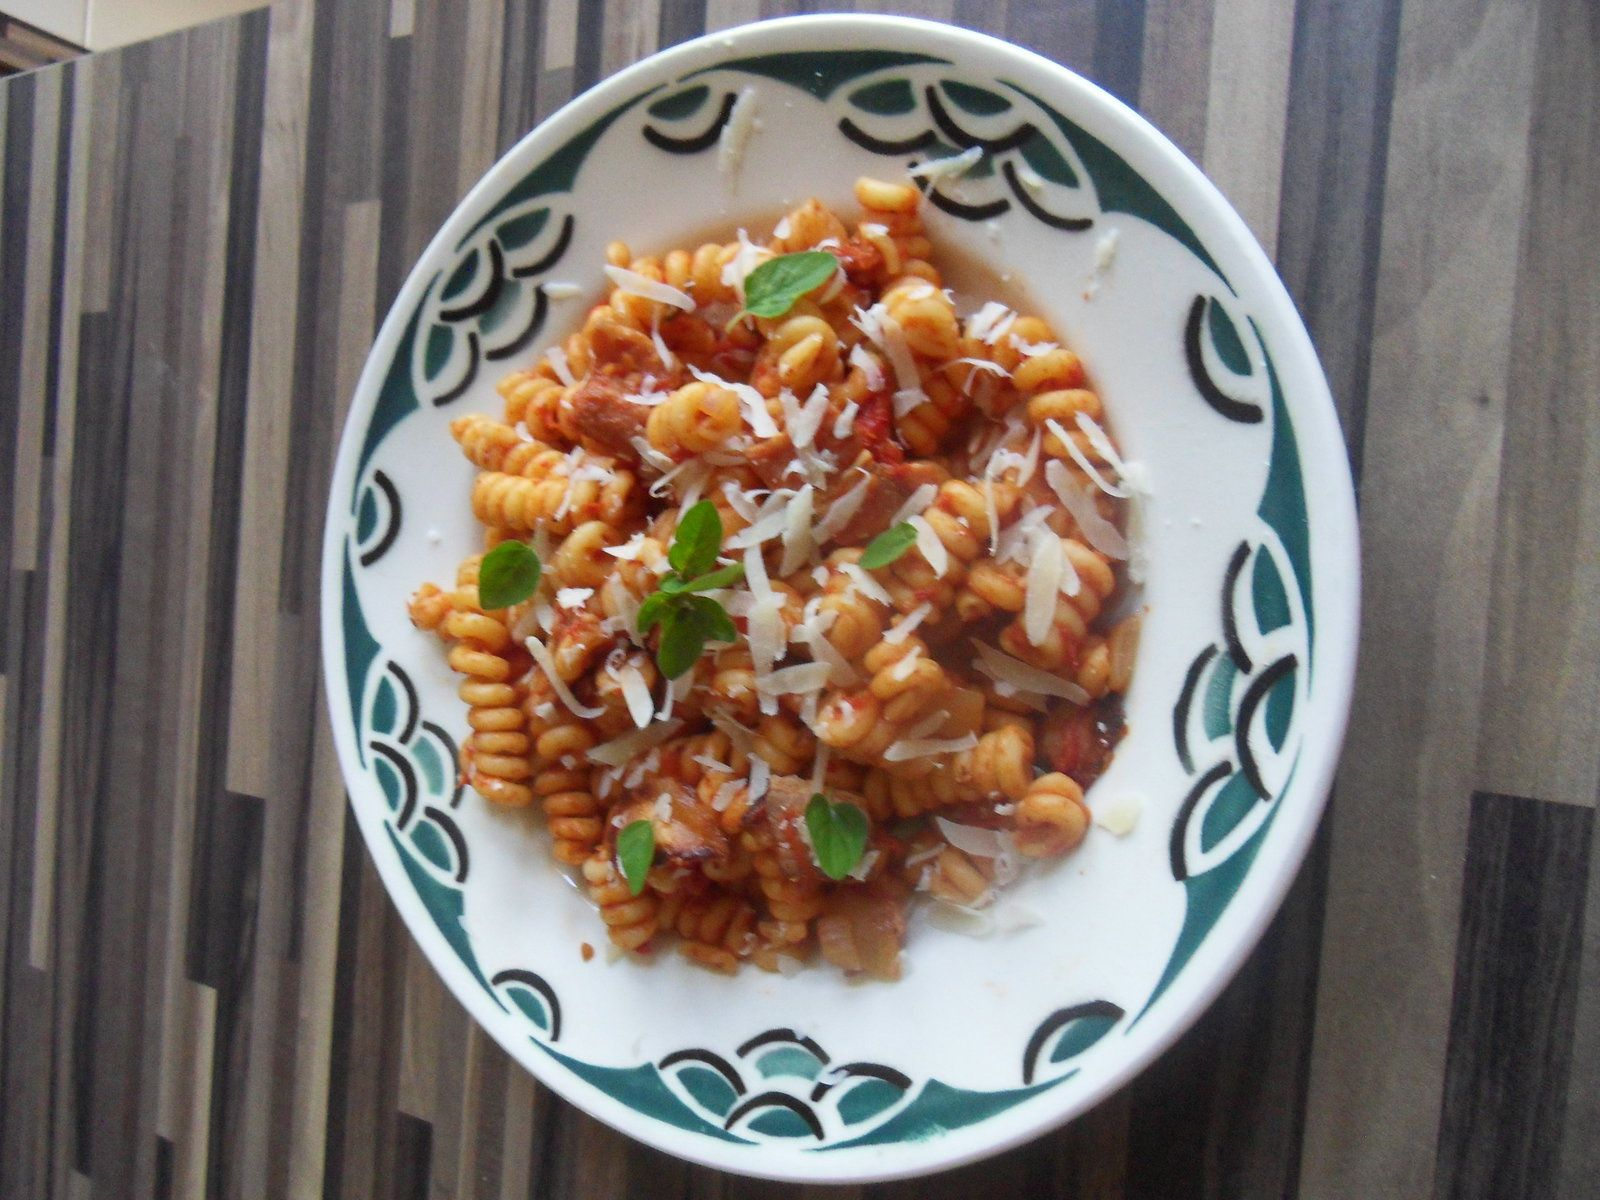 Fusilli Bucatti all 'Amatriciana